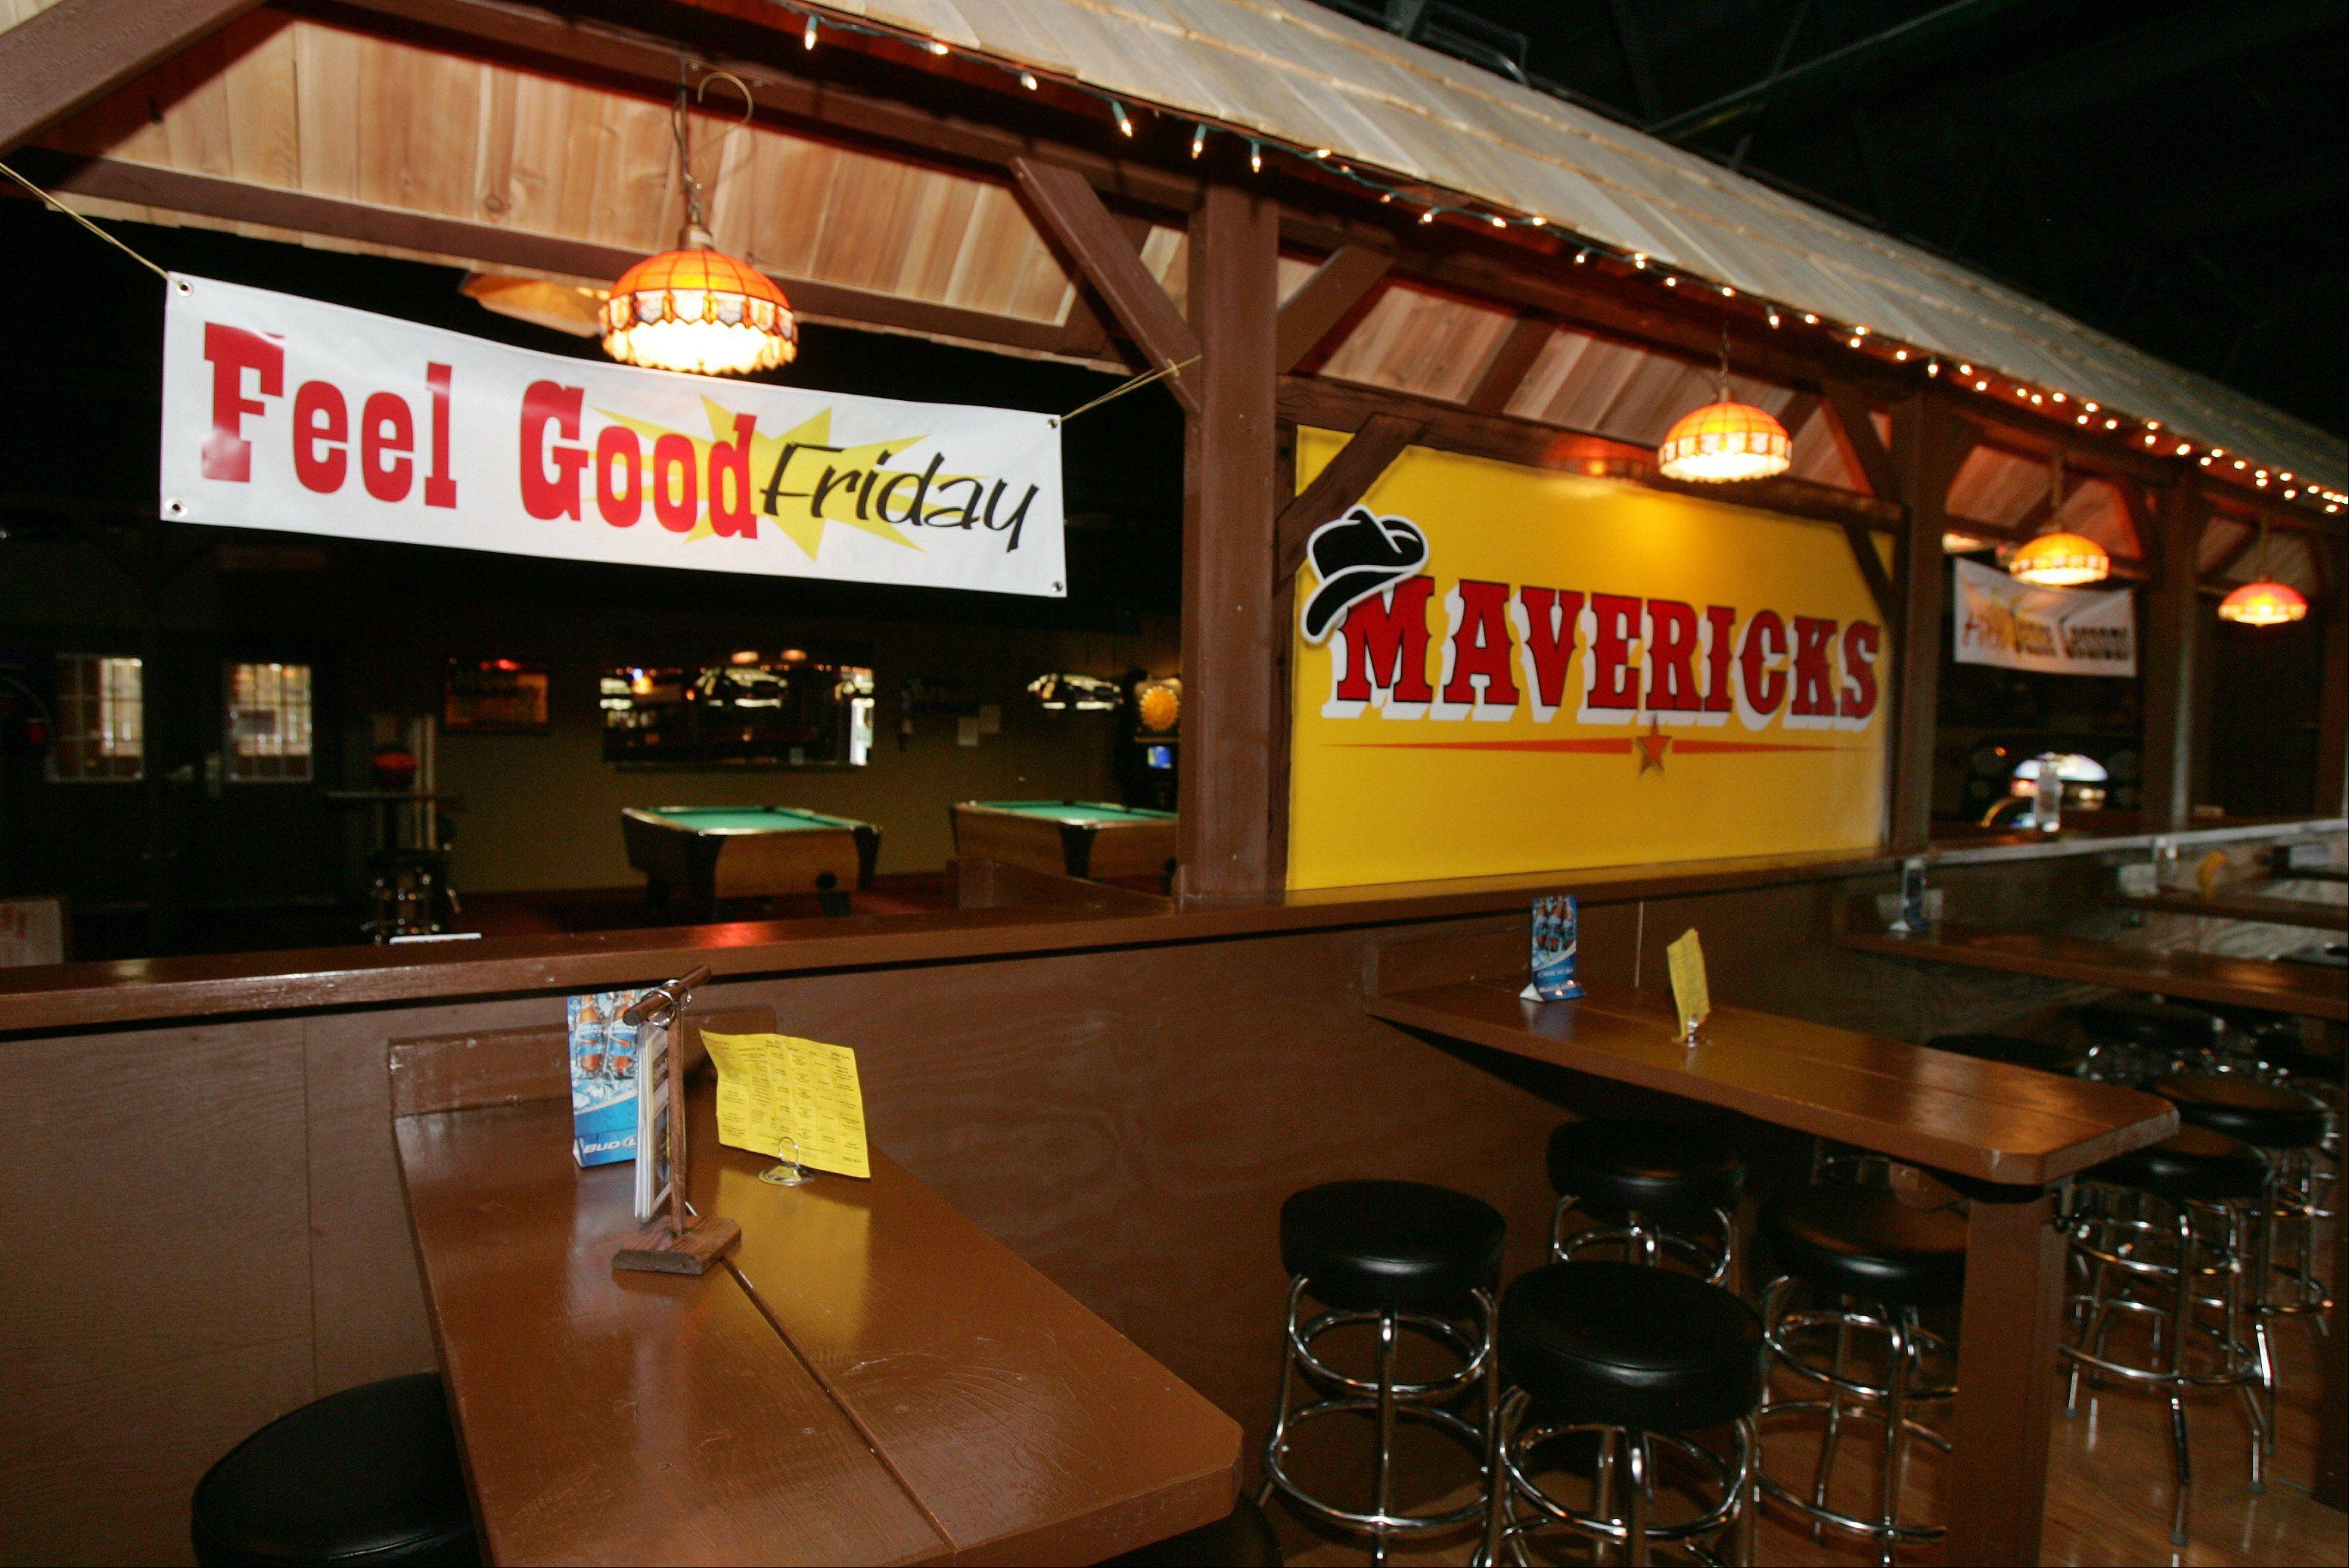 The decor matches the name at Mavericks in Mundelein.